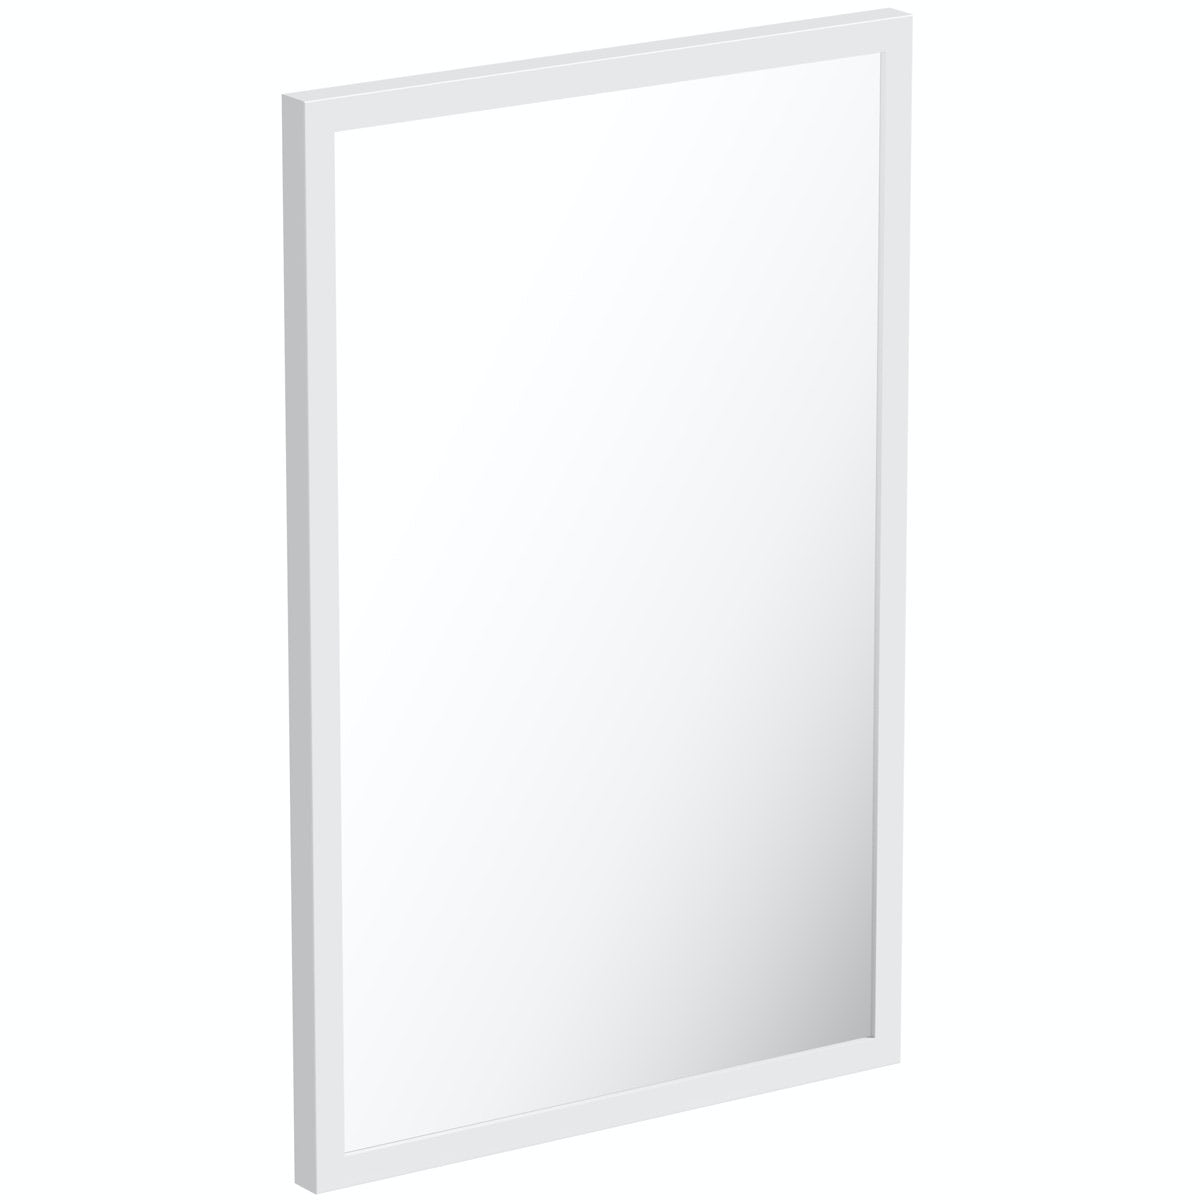 Mode Hale white gloss mirror 500 x 800mm